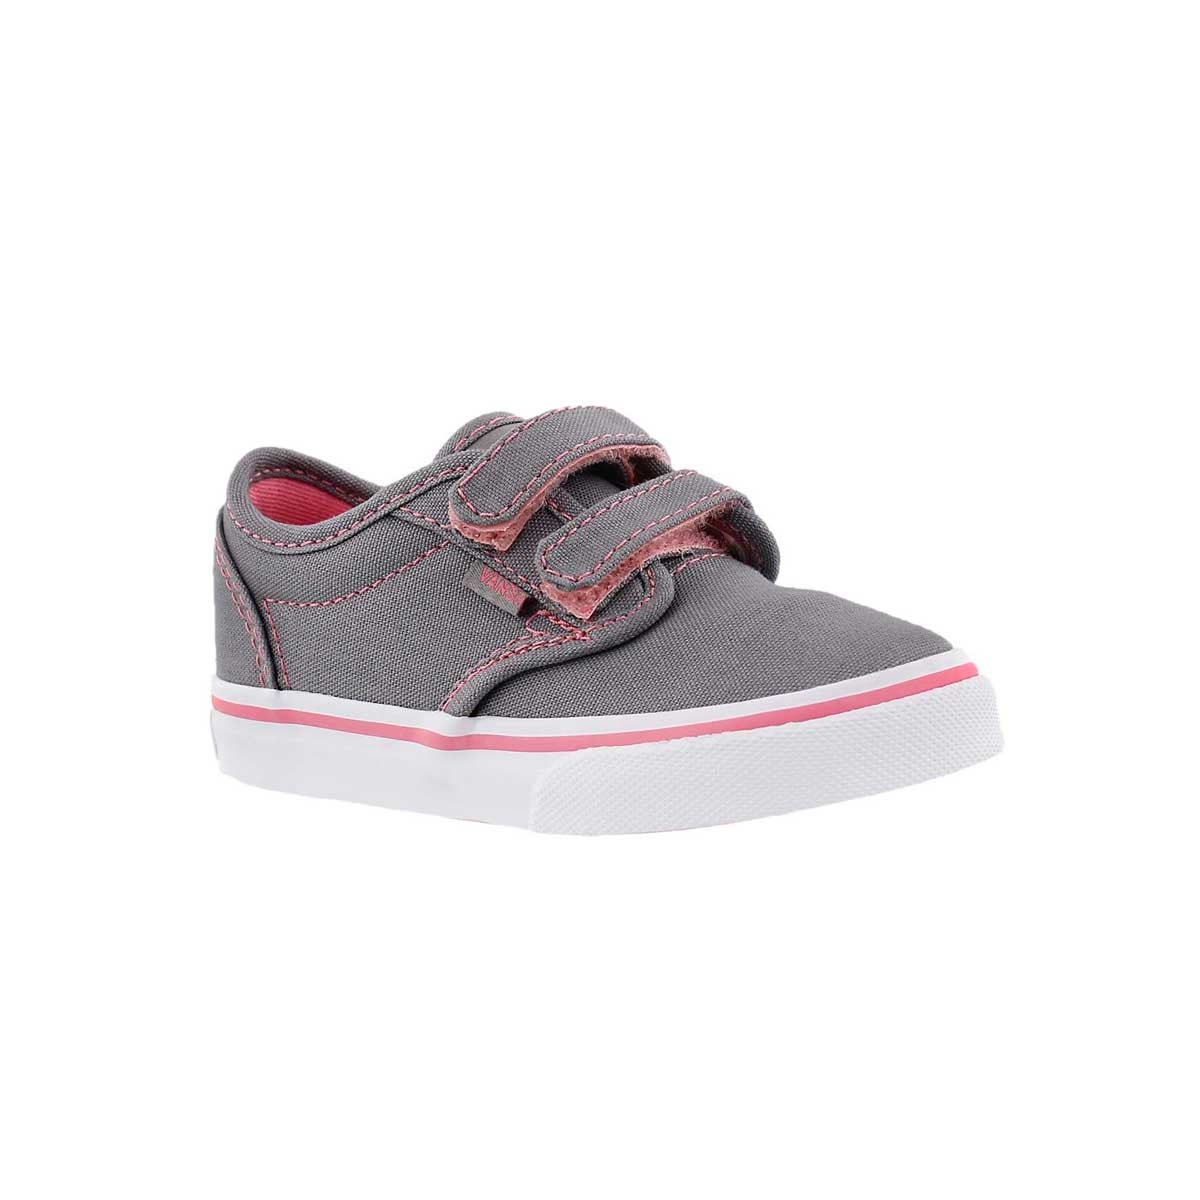 Infs-g Atwood gry/pnk sneaker